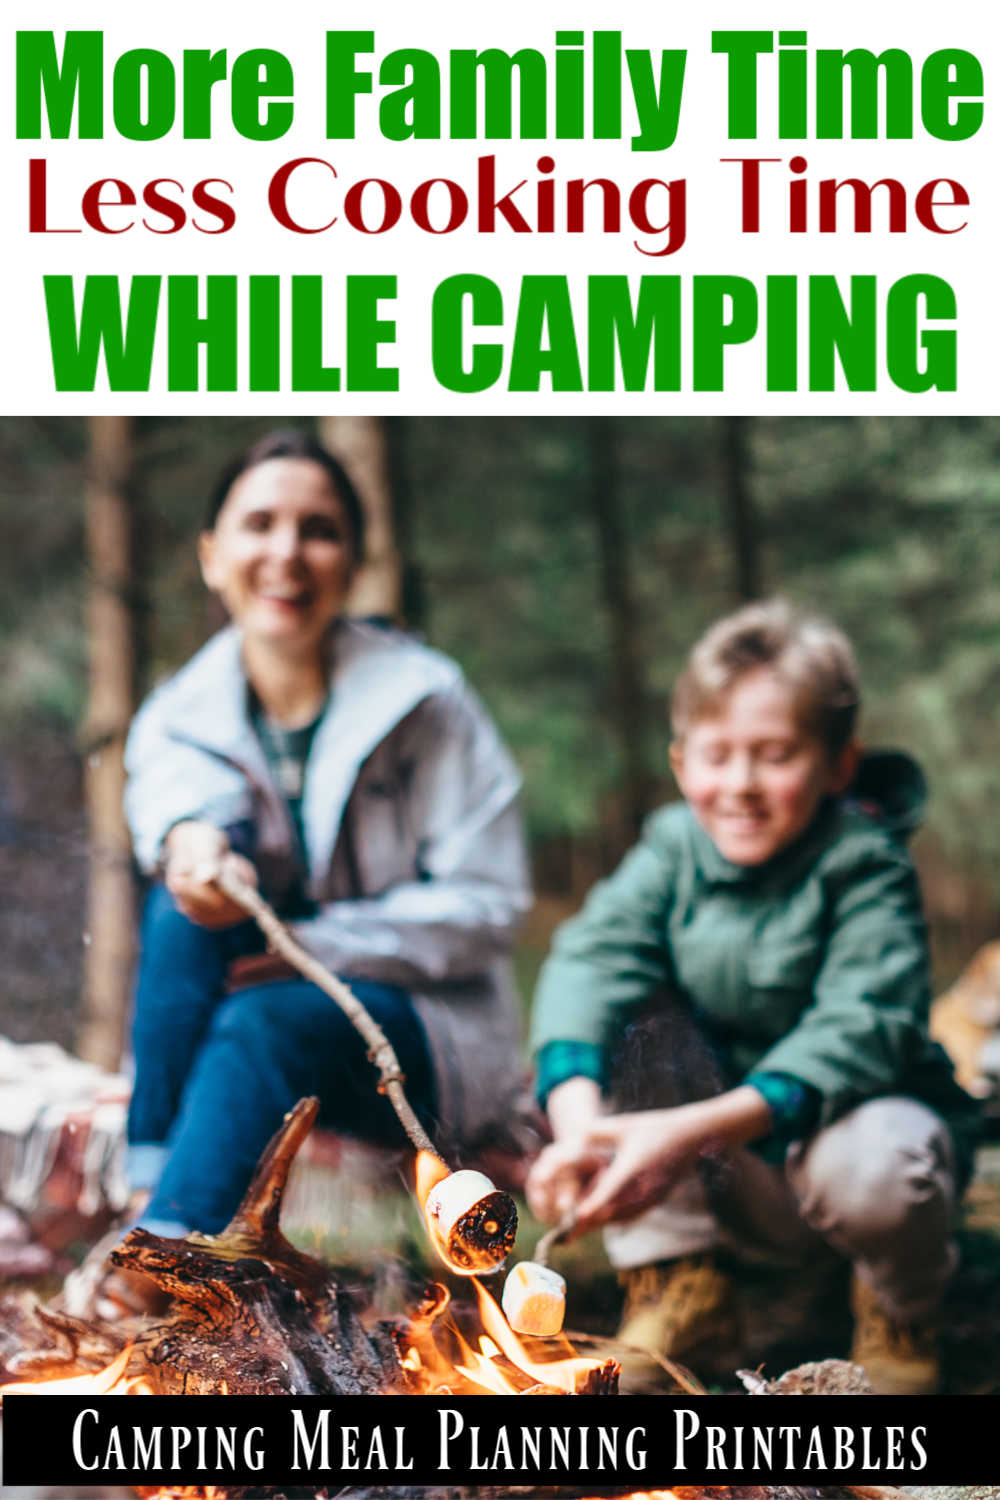 Camping Checklist Printable - Never Forget Anything At Home!